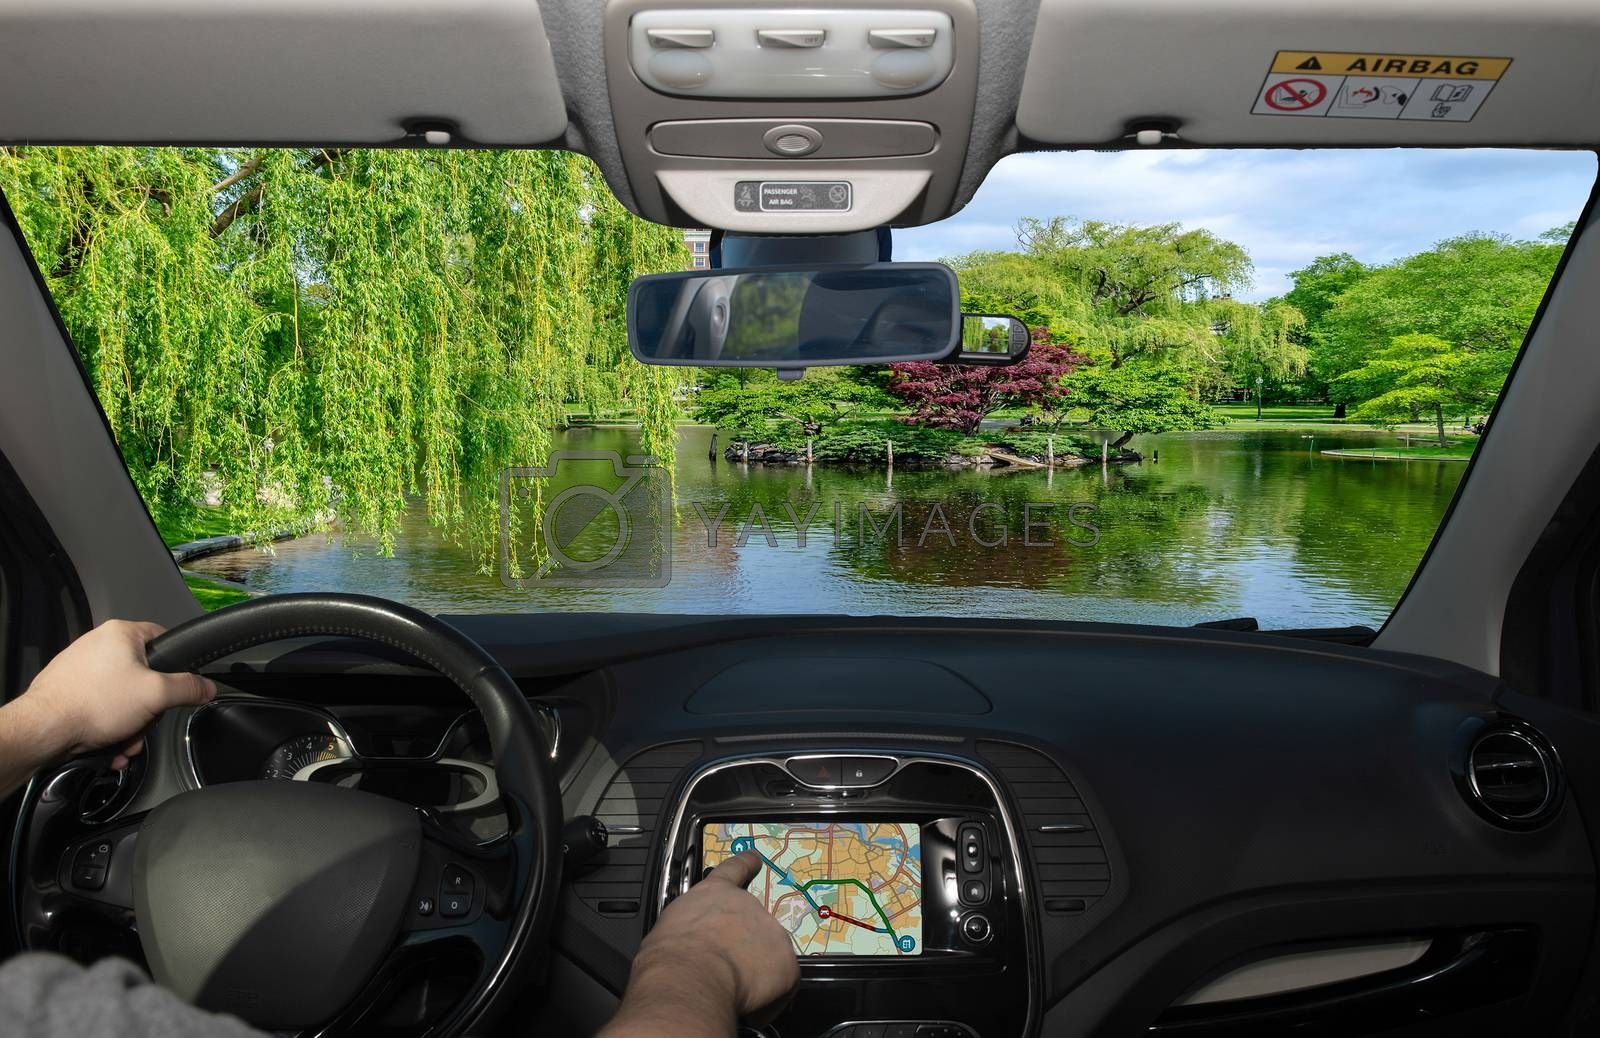 Driving a car while using the touch screen of a GPS navigation system towards the Boston Public Garden, USA